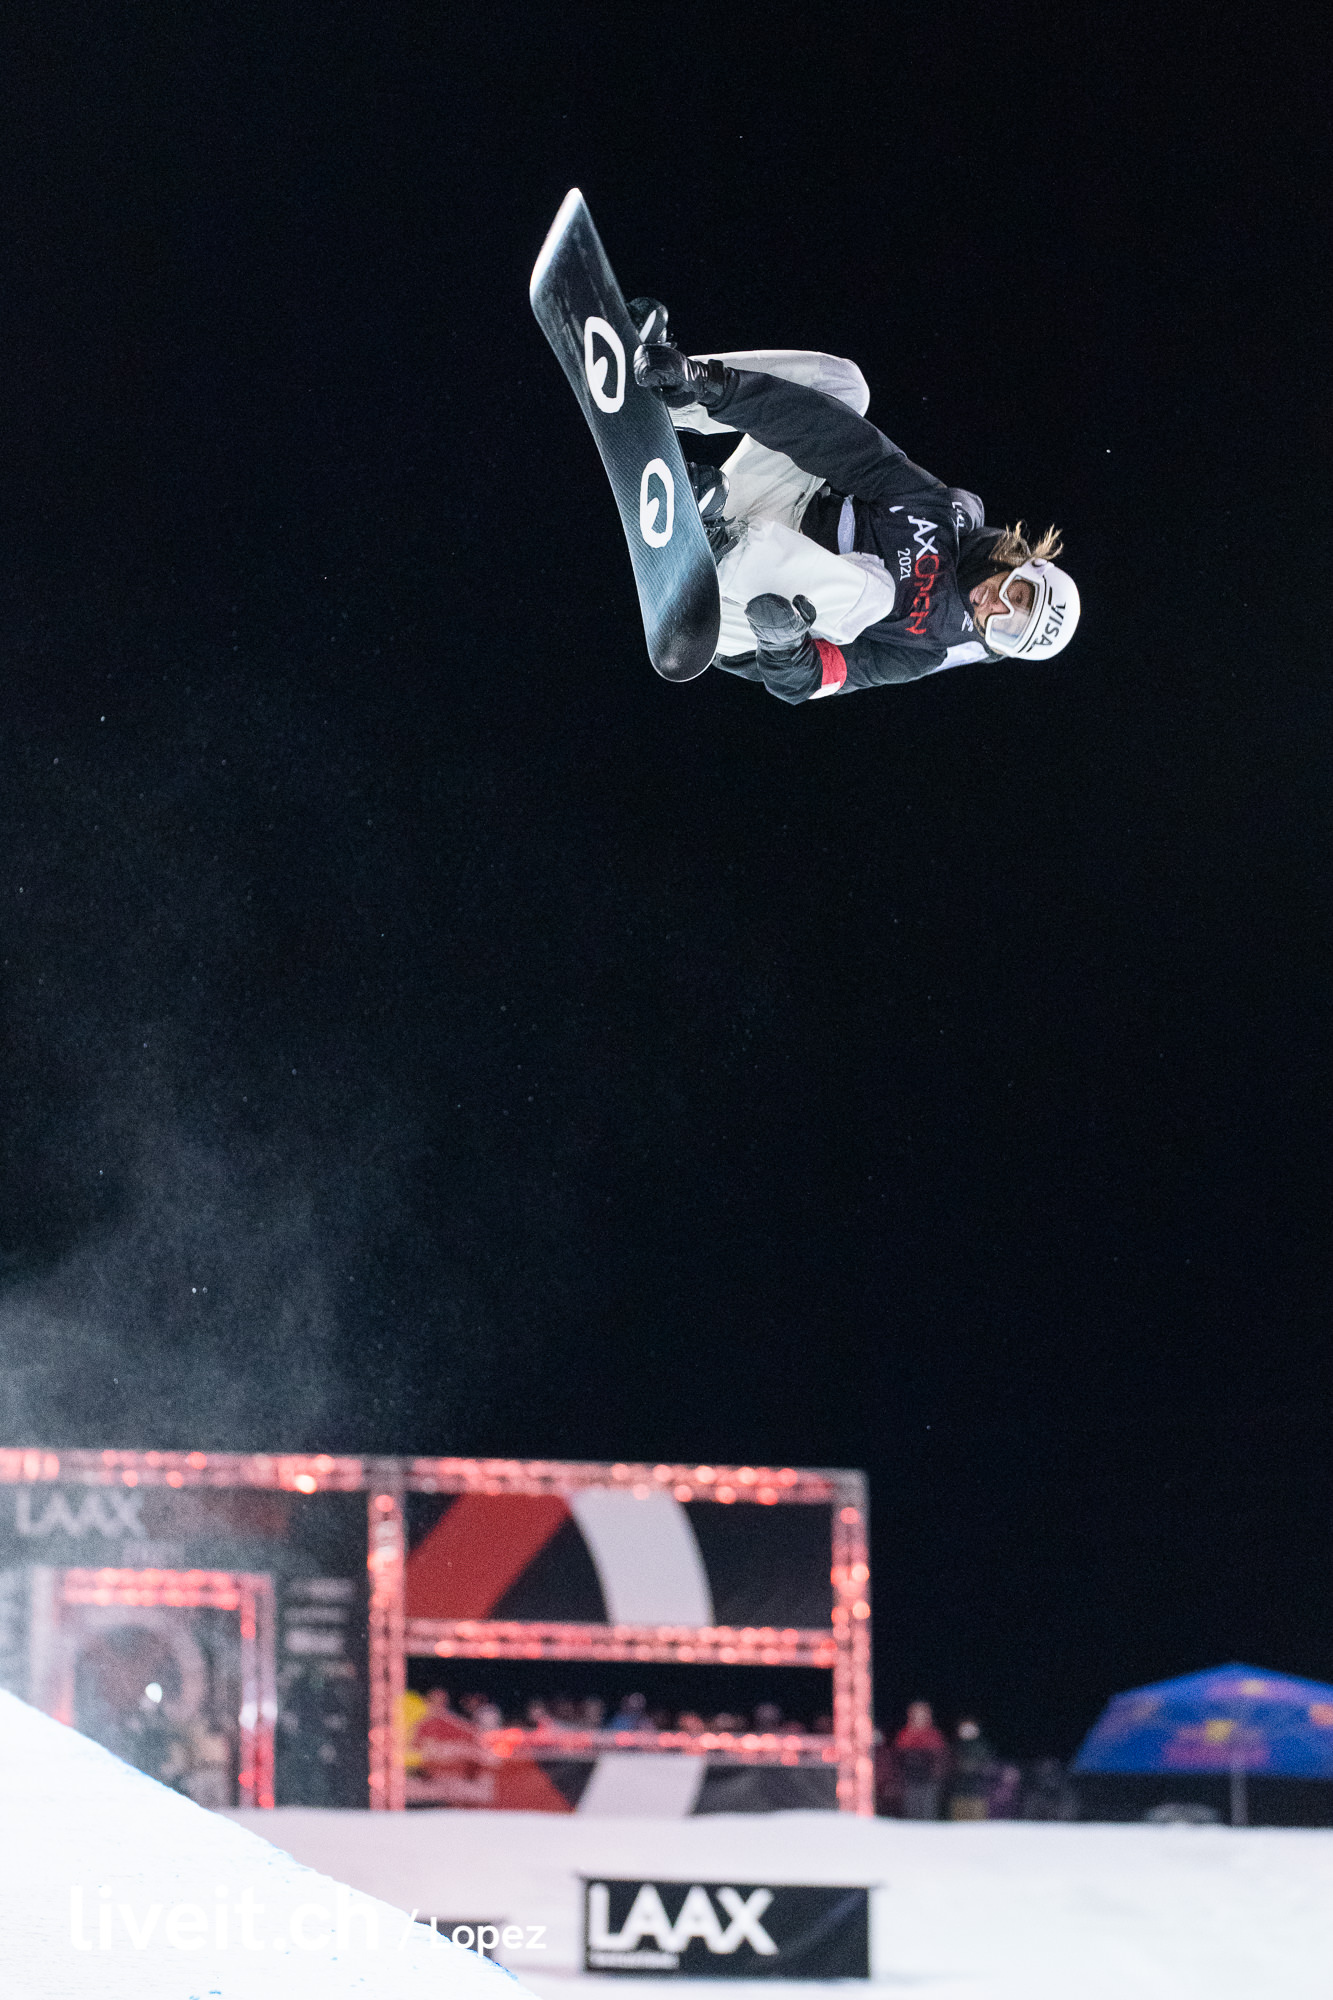 WORLD SNOWBOARD TOUR 2020/21 LAAX